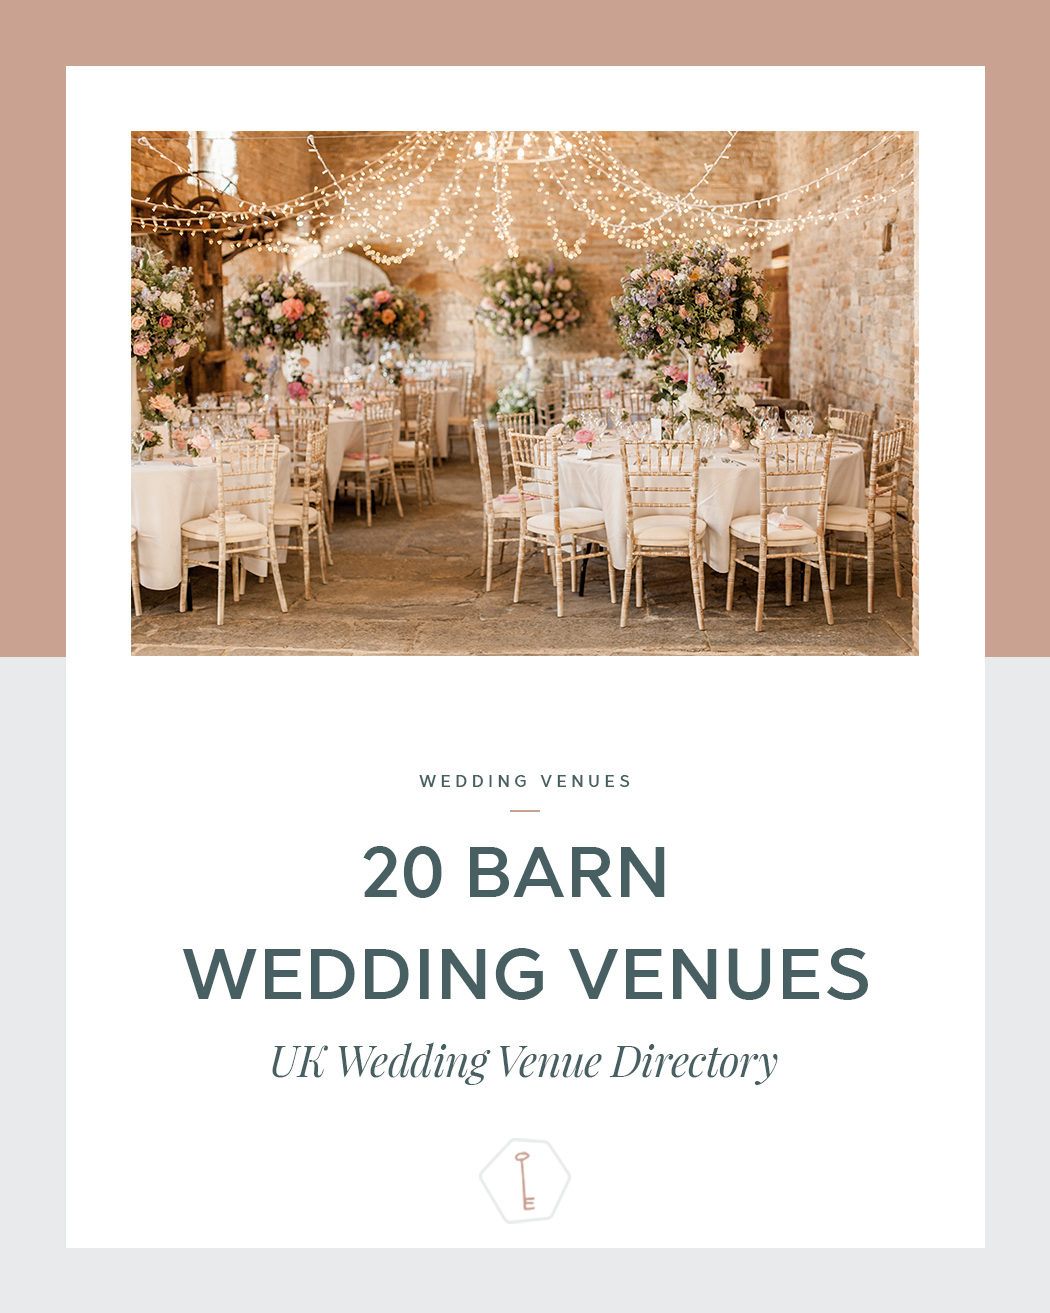 20 Barn Wedding Venues